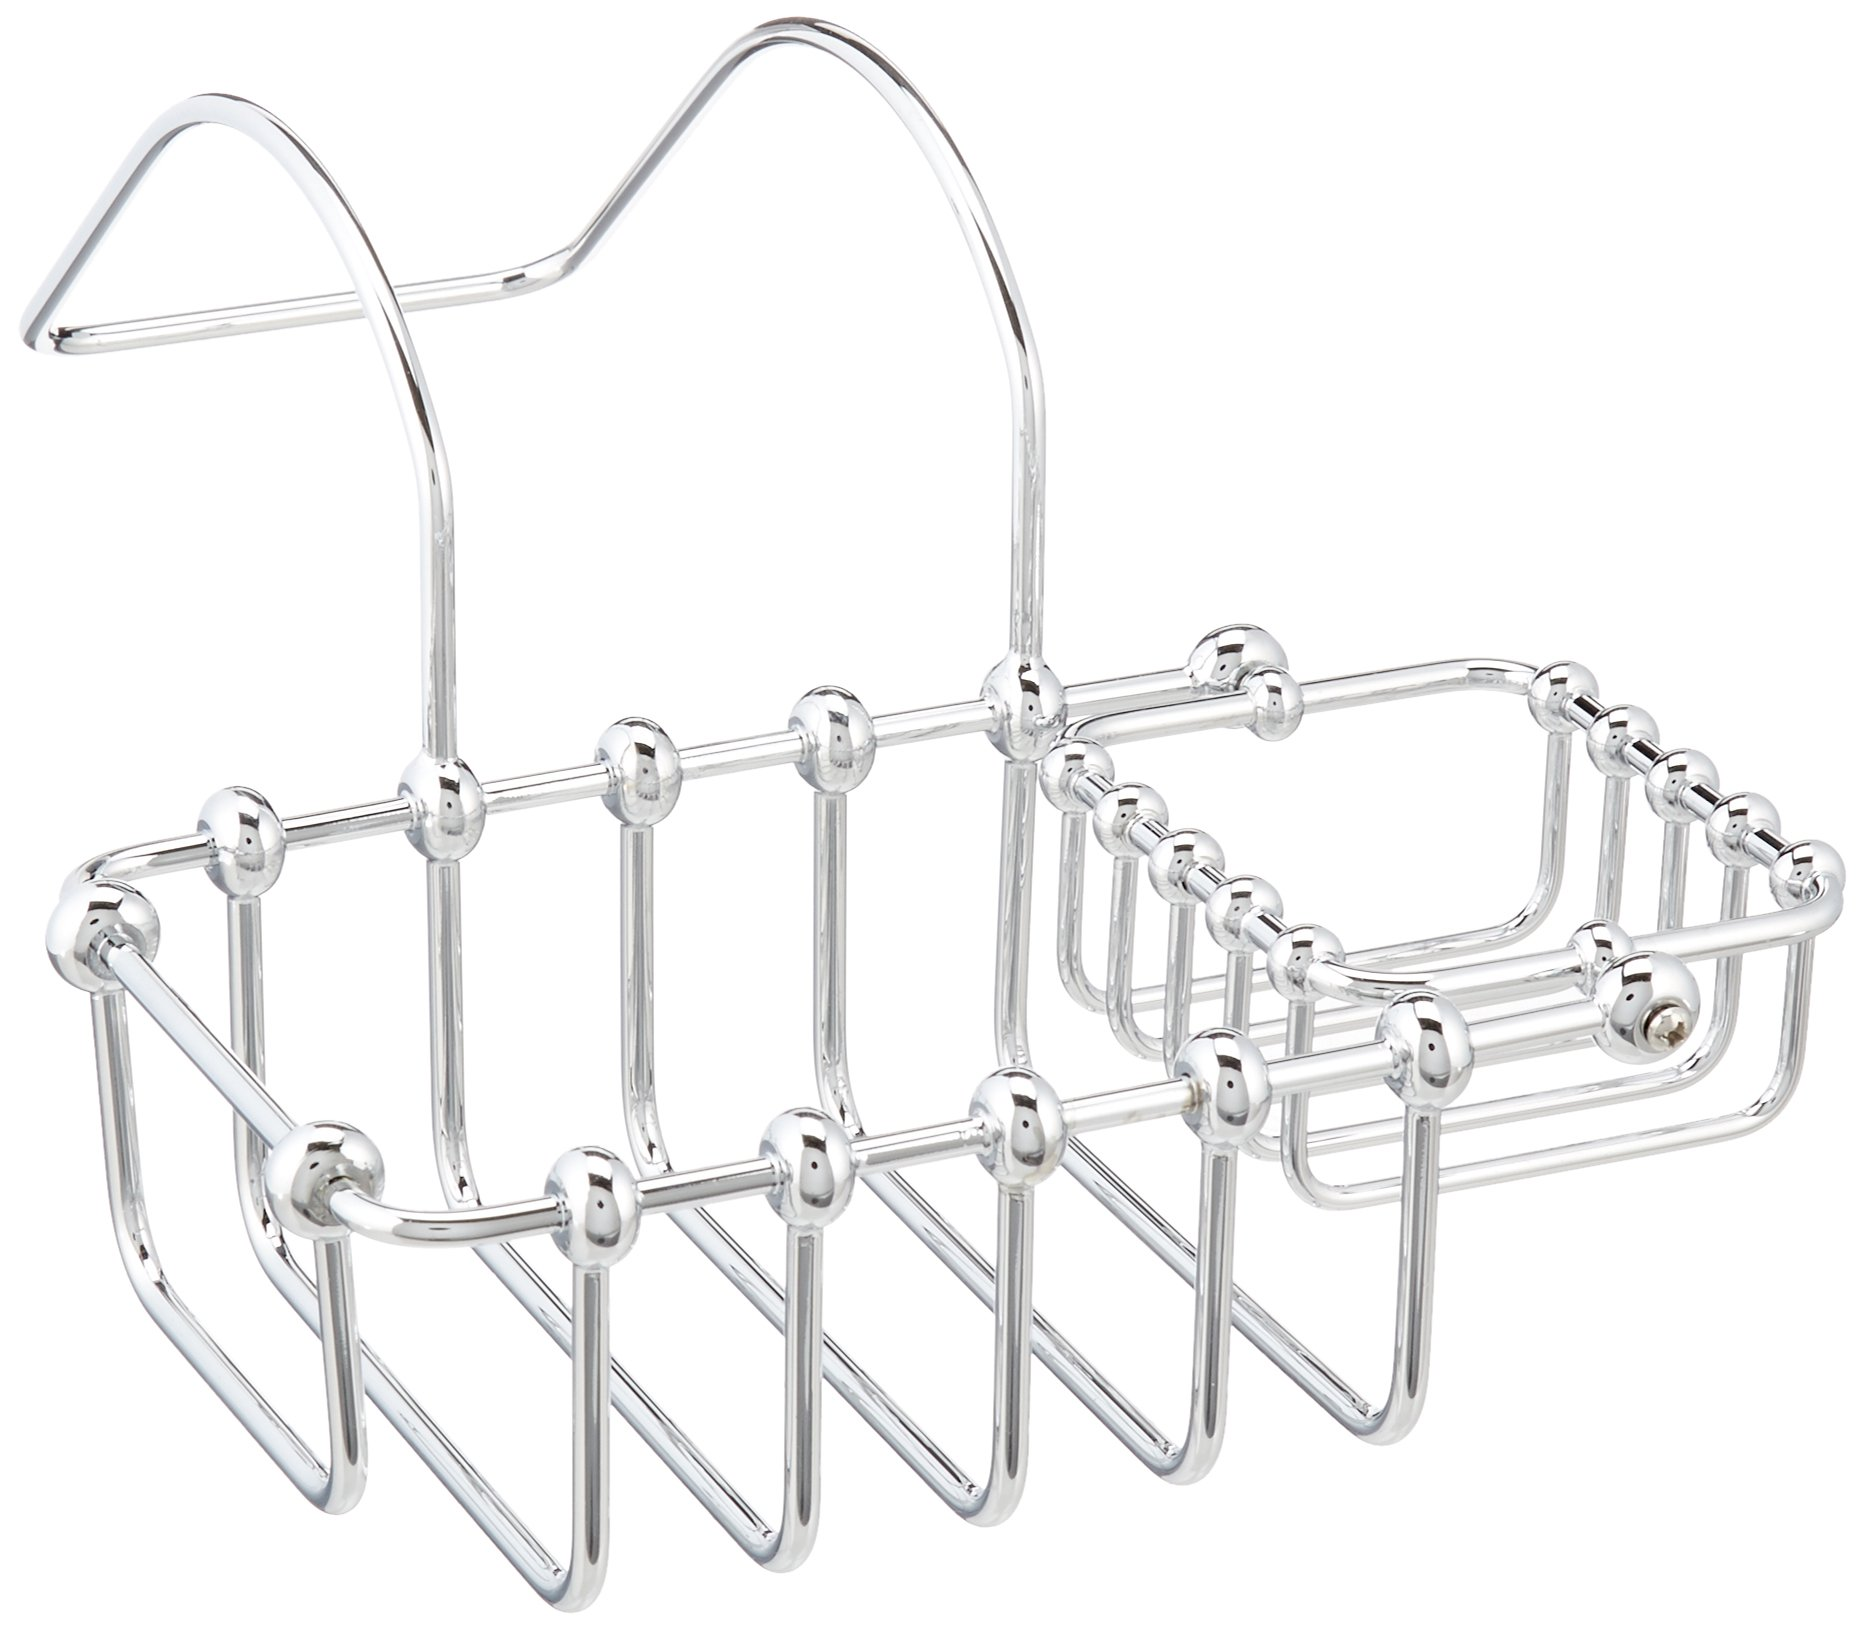 Elements of Design DS2171 St. Louis 7'' Clawfoot Tub Soap & Sponge Holder, 9-1/4'' Length, Polished Chrome by Elements of Design